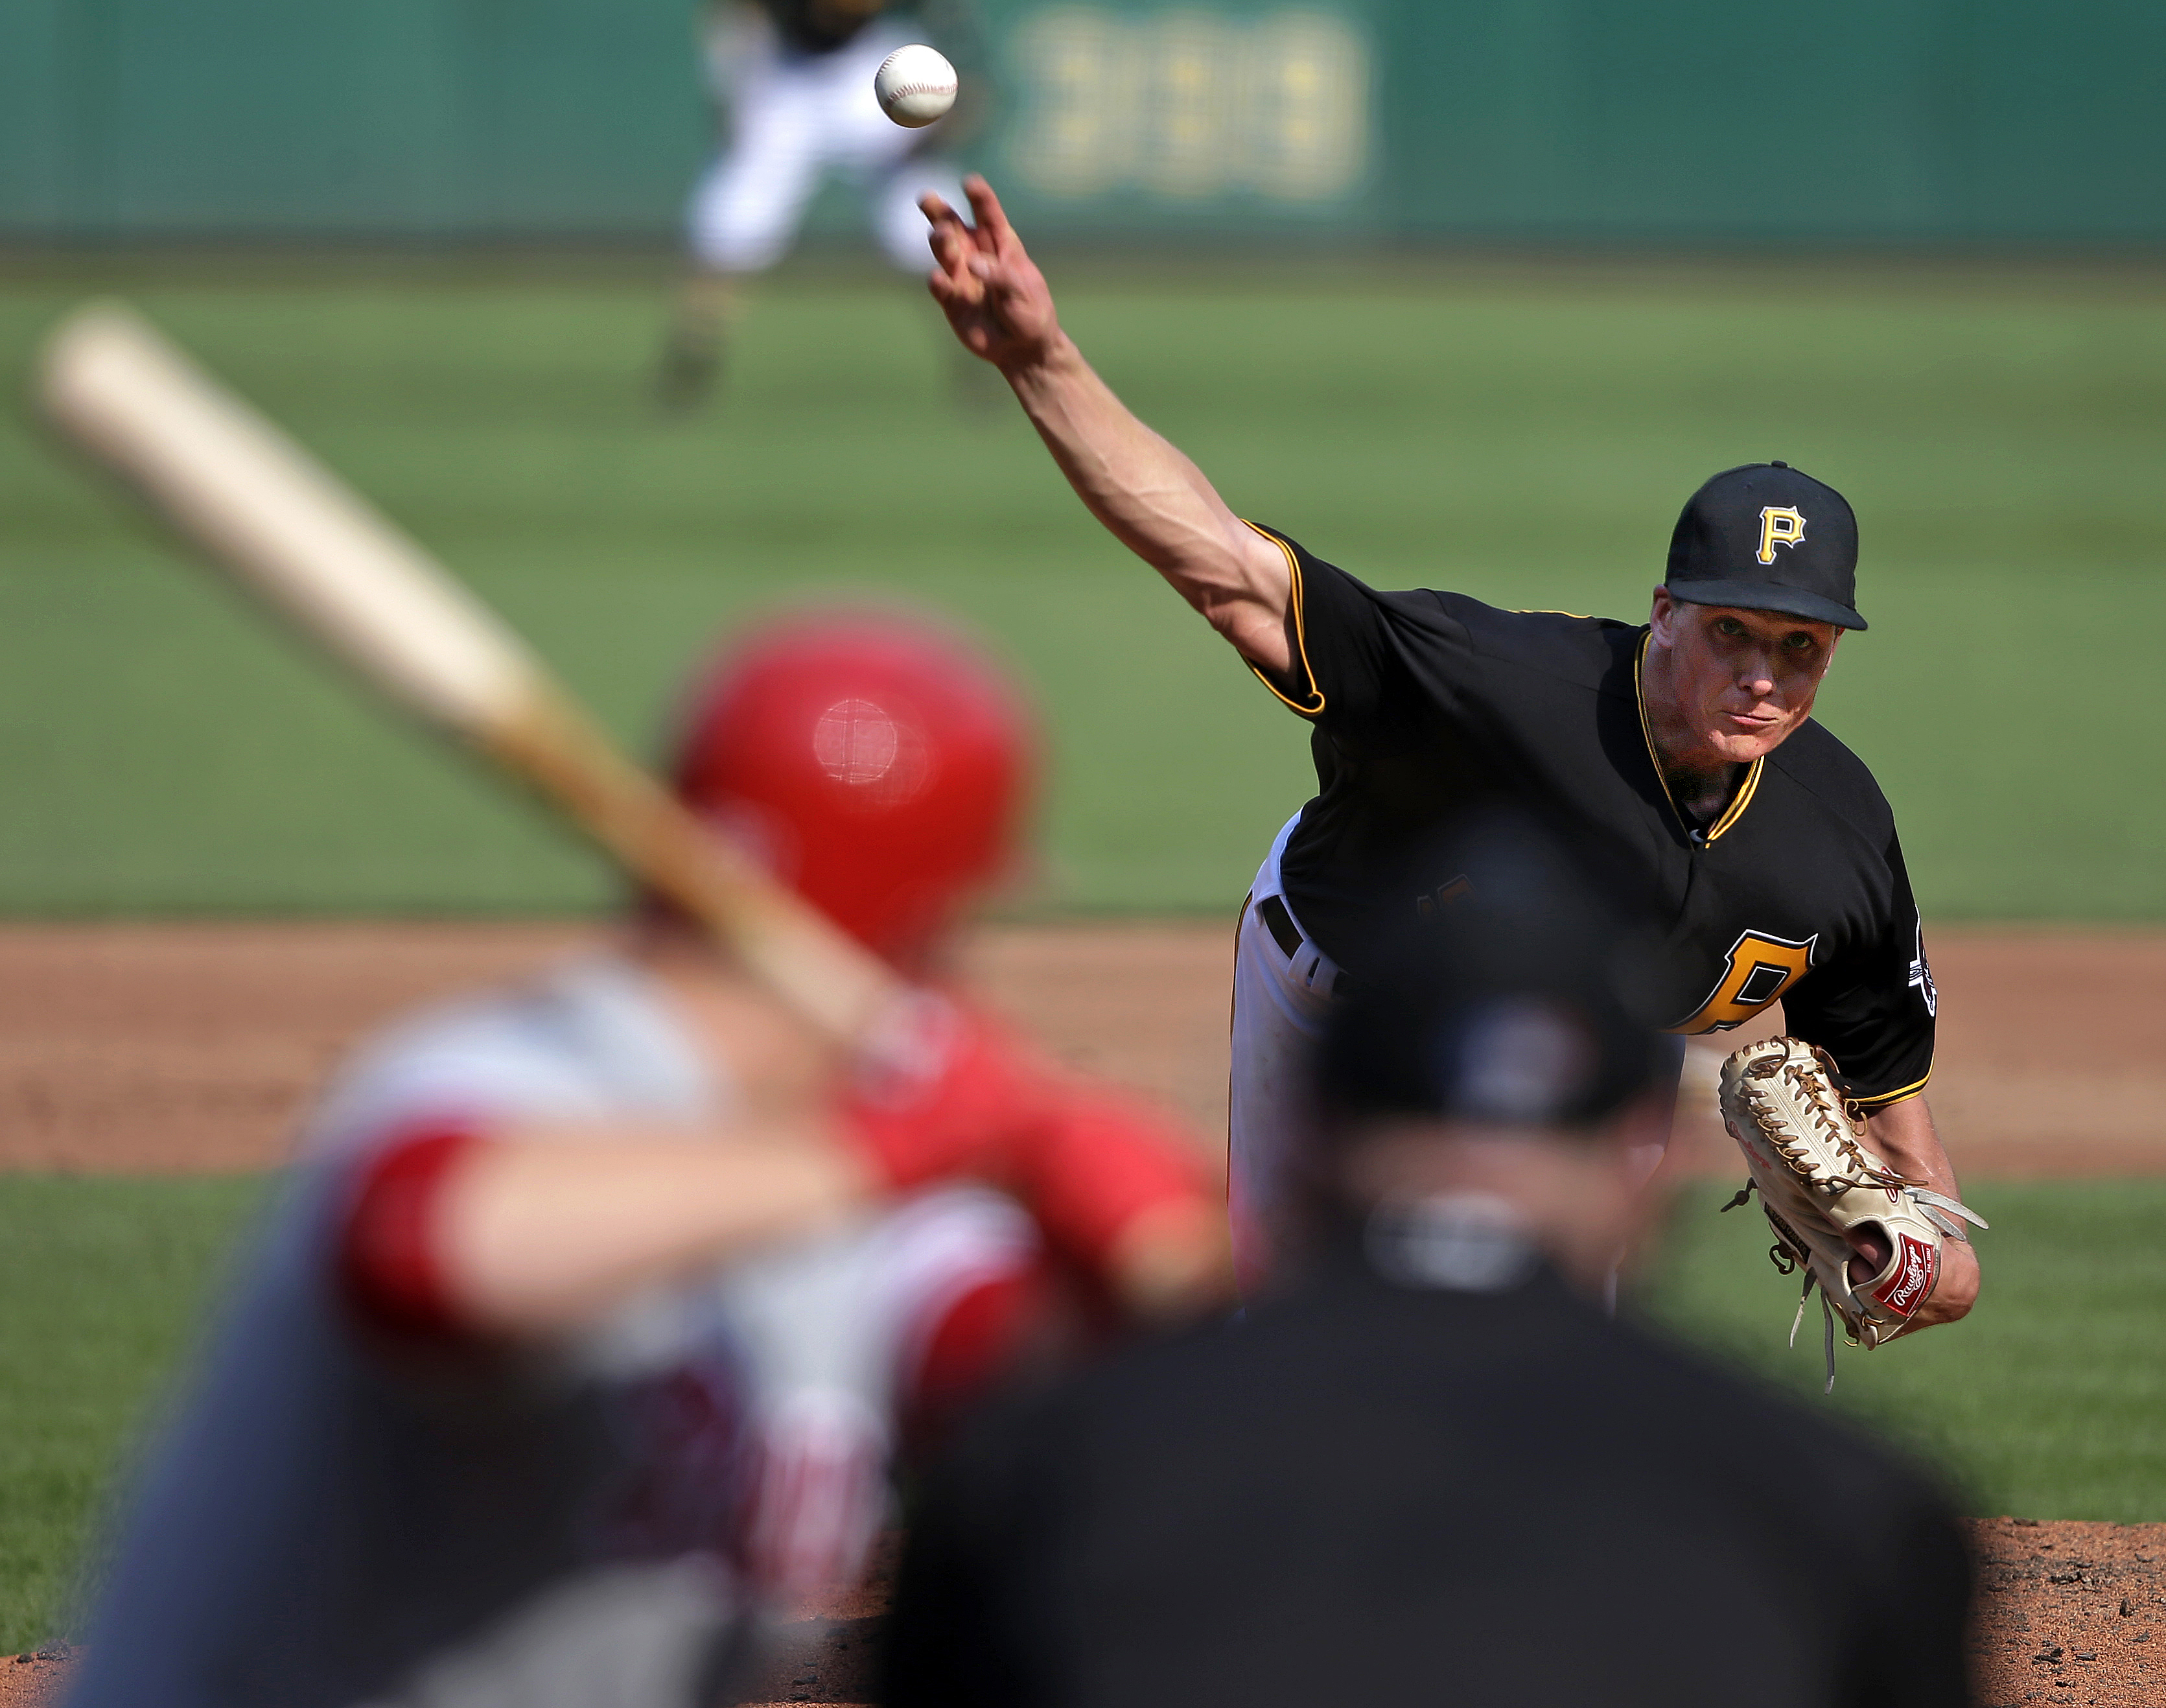 Pittsburgh Pirates starter Tyler Glasnow, right, delivers a pitch that hit Philadelphia Phillies' Cameron Rupp, left, on the helmet in the third inning of a baseball game in Pittsburgh, Saturday, July 23, 2016. (AP Photo/Gene J. Puskar)